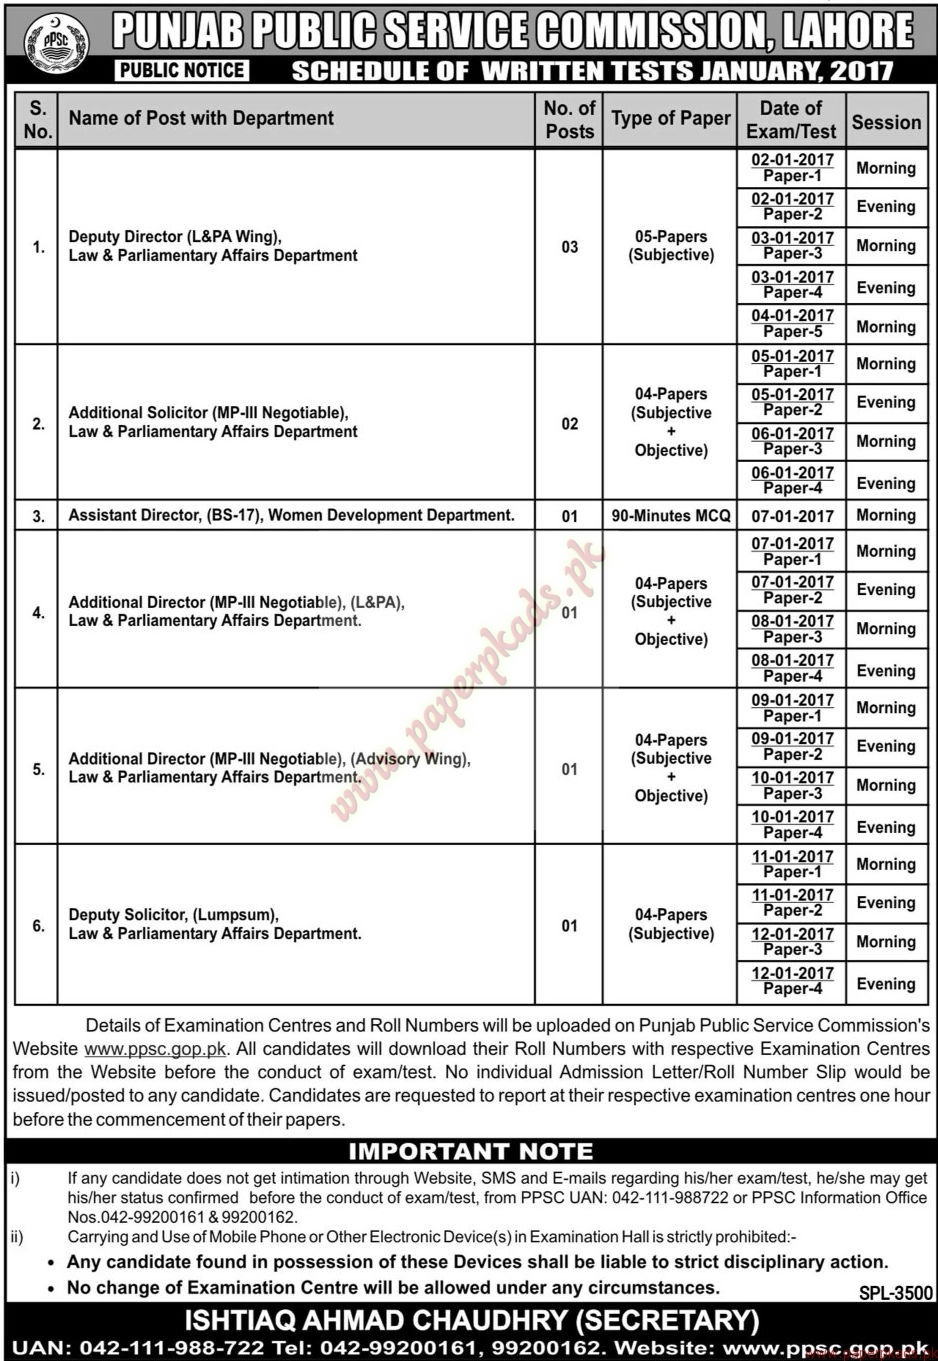 Punjab Public Service Commission Lahore Jobs - Jang Jobs ads 30 December 2016